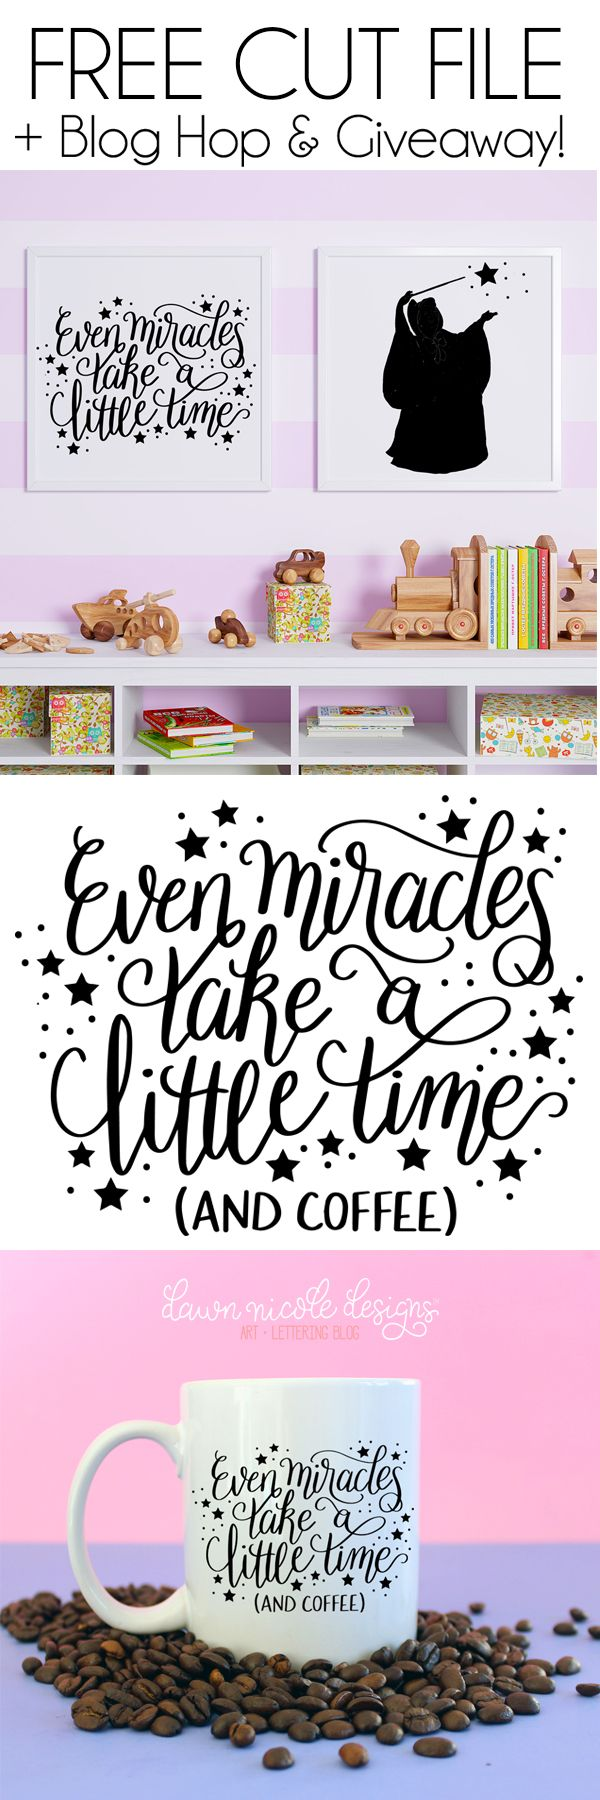 Even Miracles Take Time Free SVG Cut File. Because even miracles take time...and coffee. PLUS, A huge giveaway and Disney inspired blog hop you don't want to miss! | dawnnicoledesigns.com